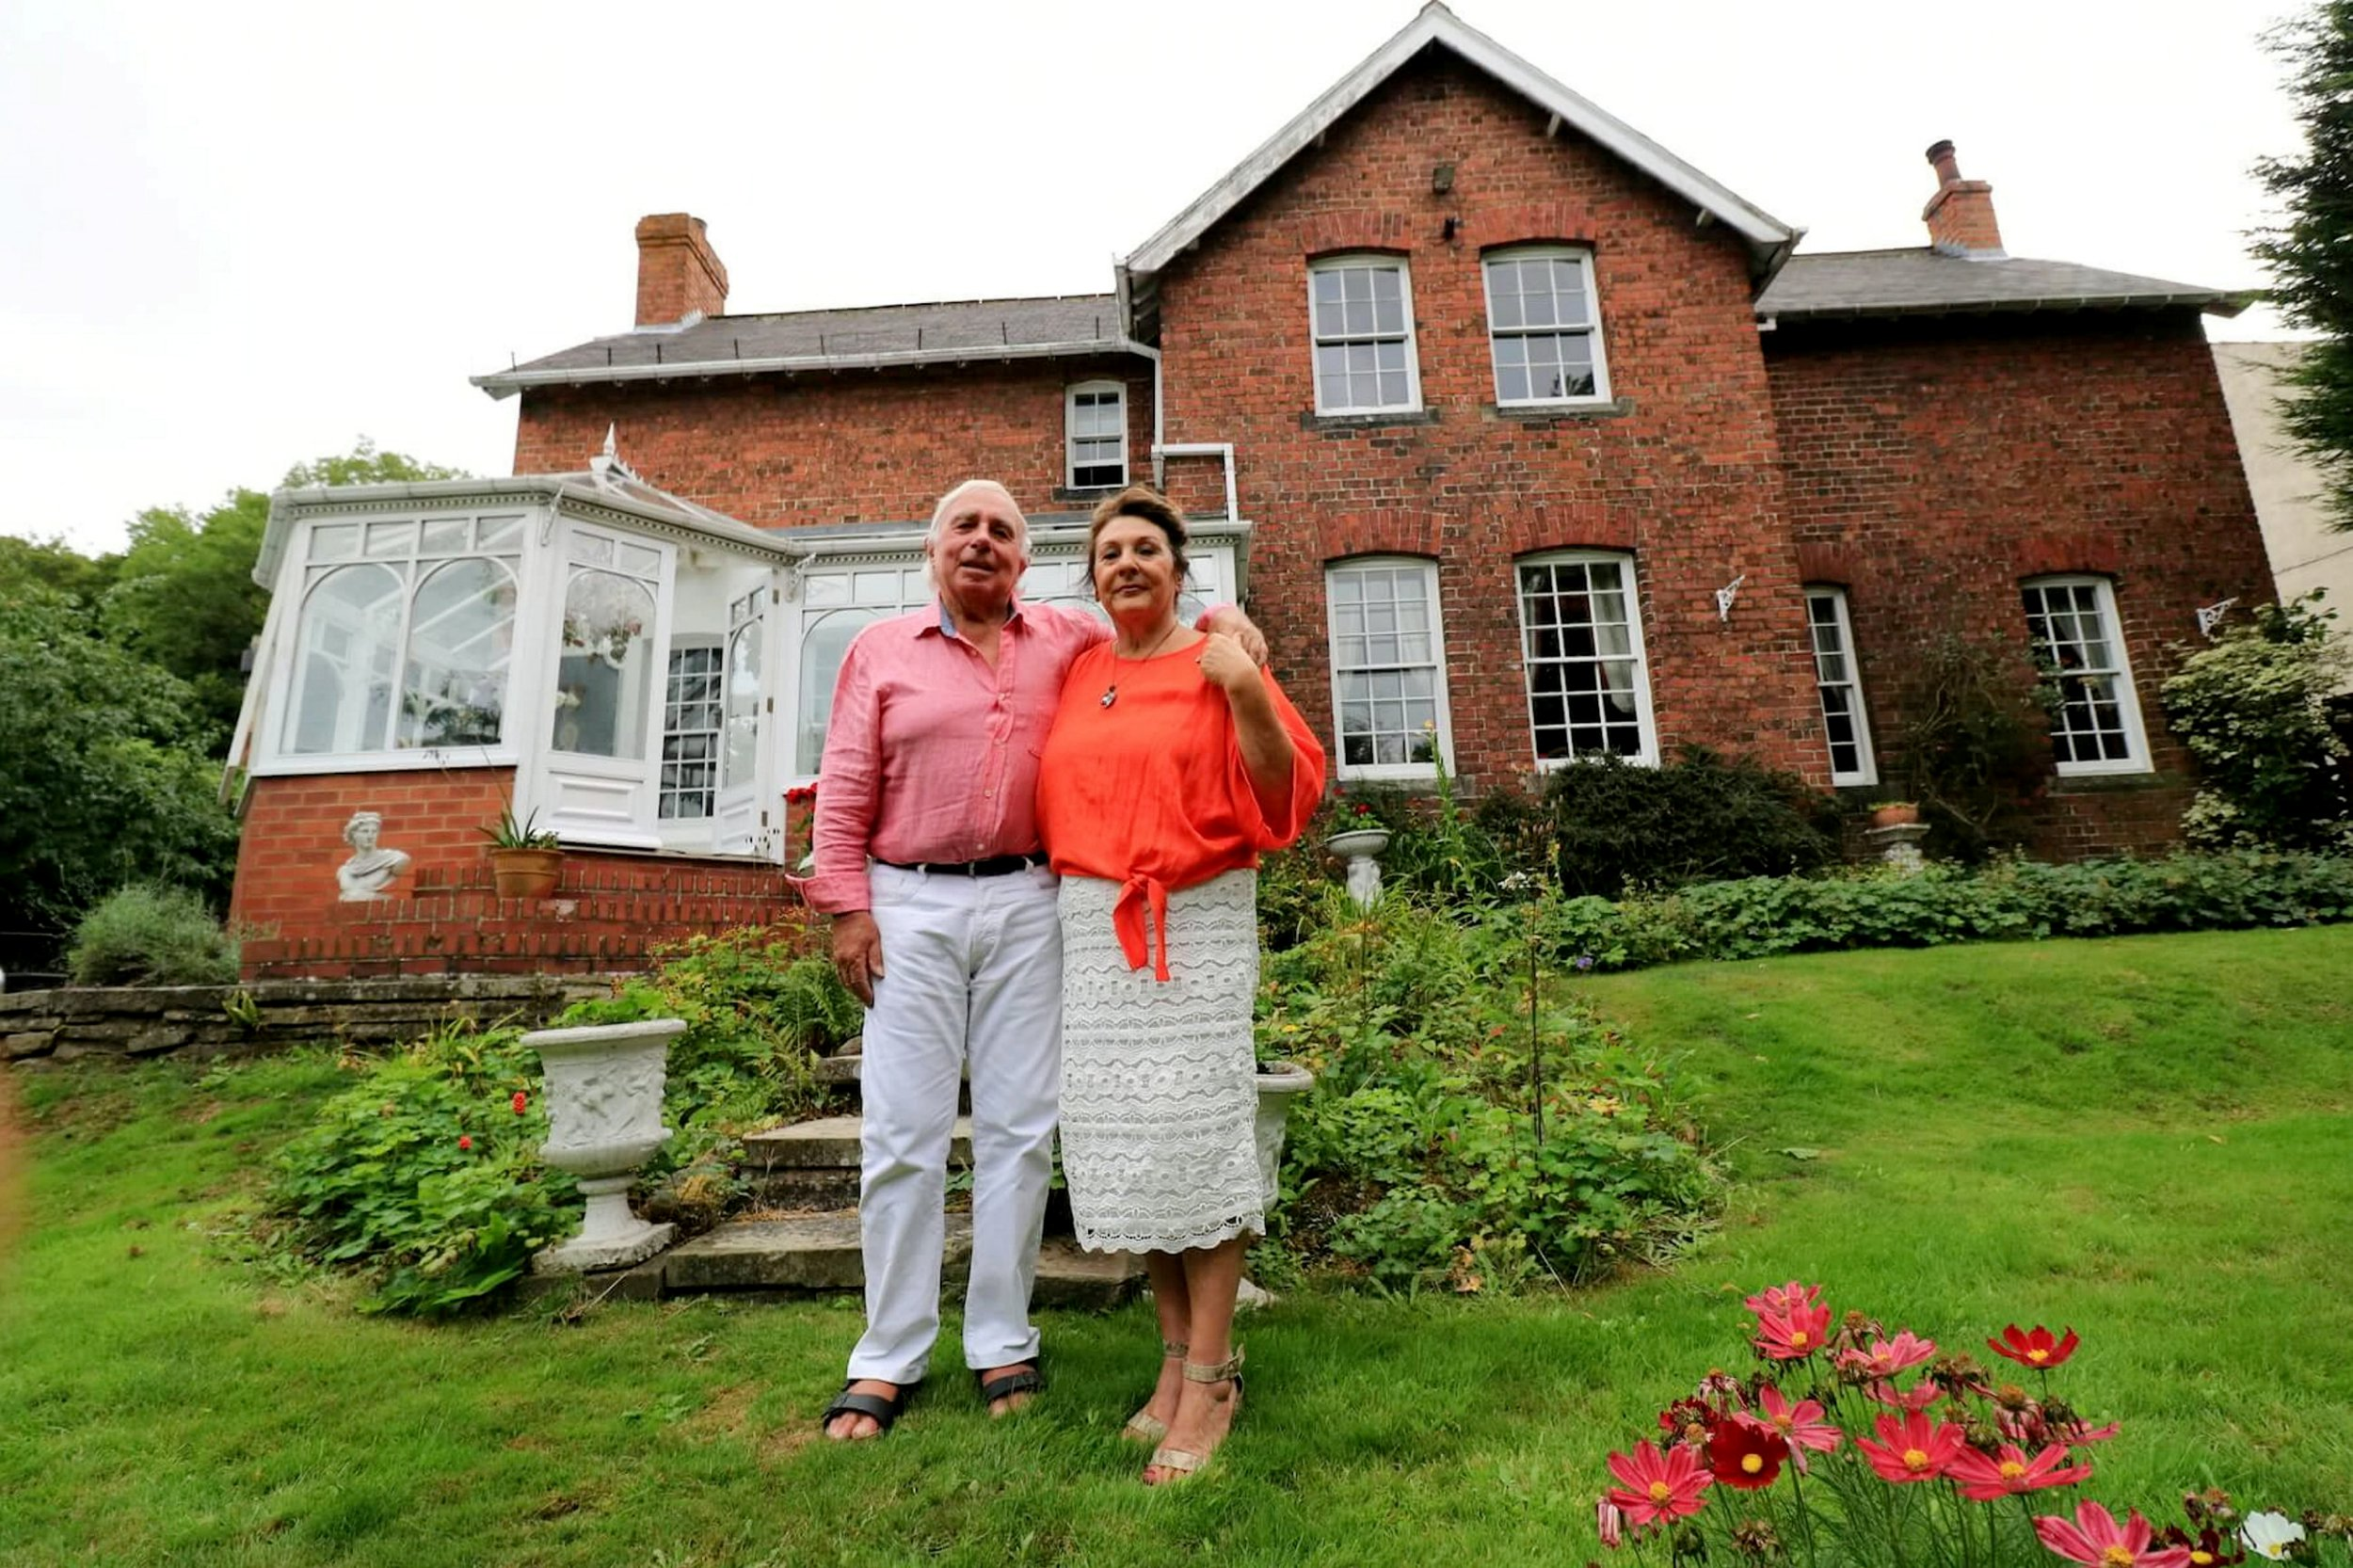 Avril Smith, 68 and Robert Smith, 75, with their house. See SWNS story SWLEhouse; A raffle set up to give people the chance to win the keys to a ?500k home for just ?10 has been dramatically SHUT DOWN by the gambling commission. Owners Robert Smith, 75 and wife Avril Smith, 68, allowed entrants the chance to win their incredible home in North Yorkshire if they bought a ?10 ticket to the draw set up in September 2018. However, in a statement posted on the raffle's website, the couple gave the devastating news the Gambling Commision had closed down the raffle as it had been deemed a potential lottery. The Gambling Commision will not allow the couple to offer the 1875 house as a prize or to offer a cash alternative.